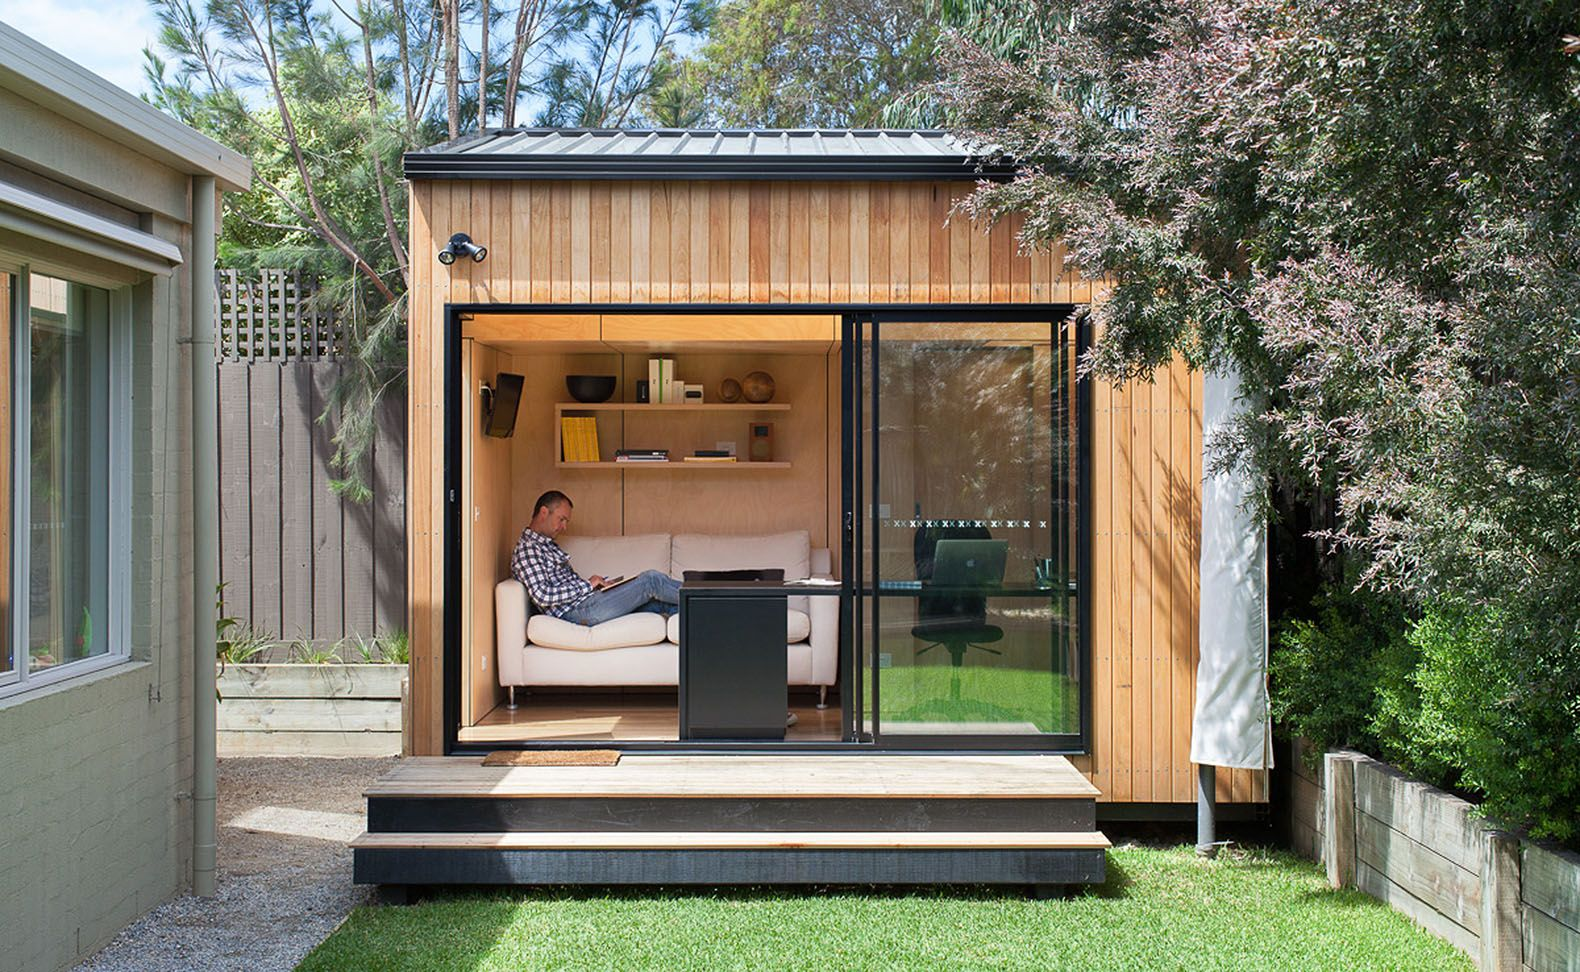 Green roof-ready Backyard Room pops up in six short weeks   Shed design,  Livable sheds, Building a shed